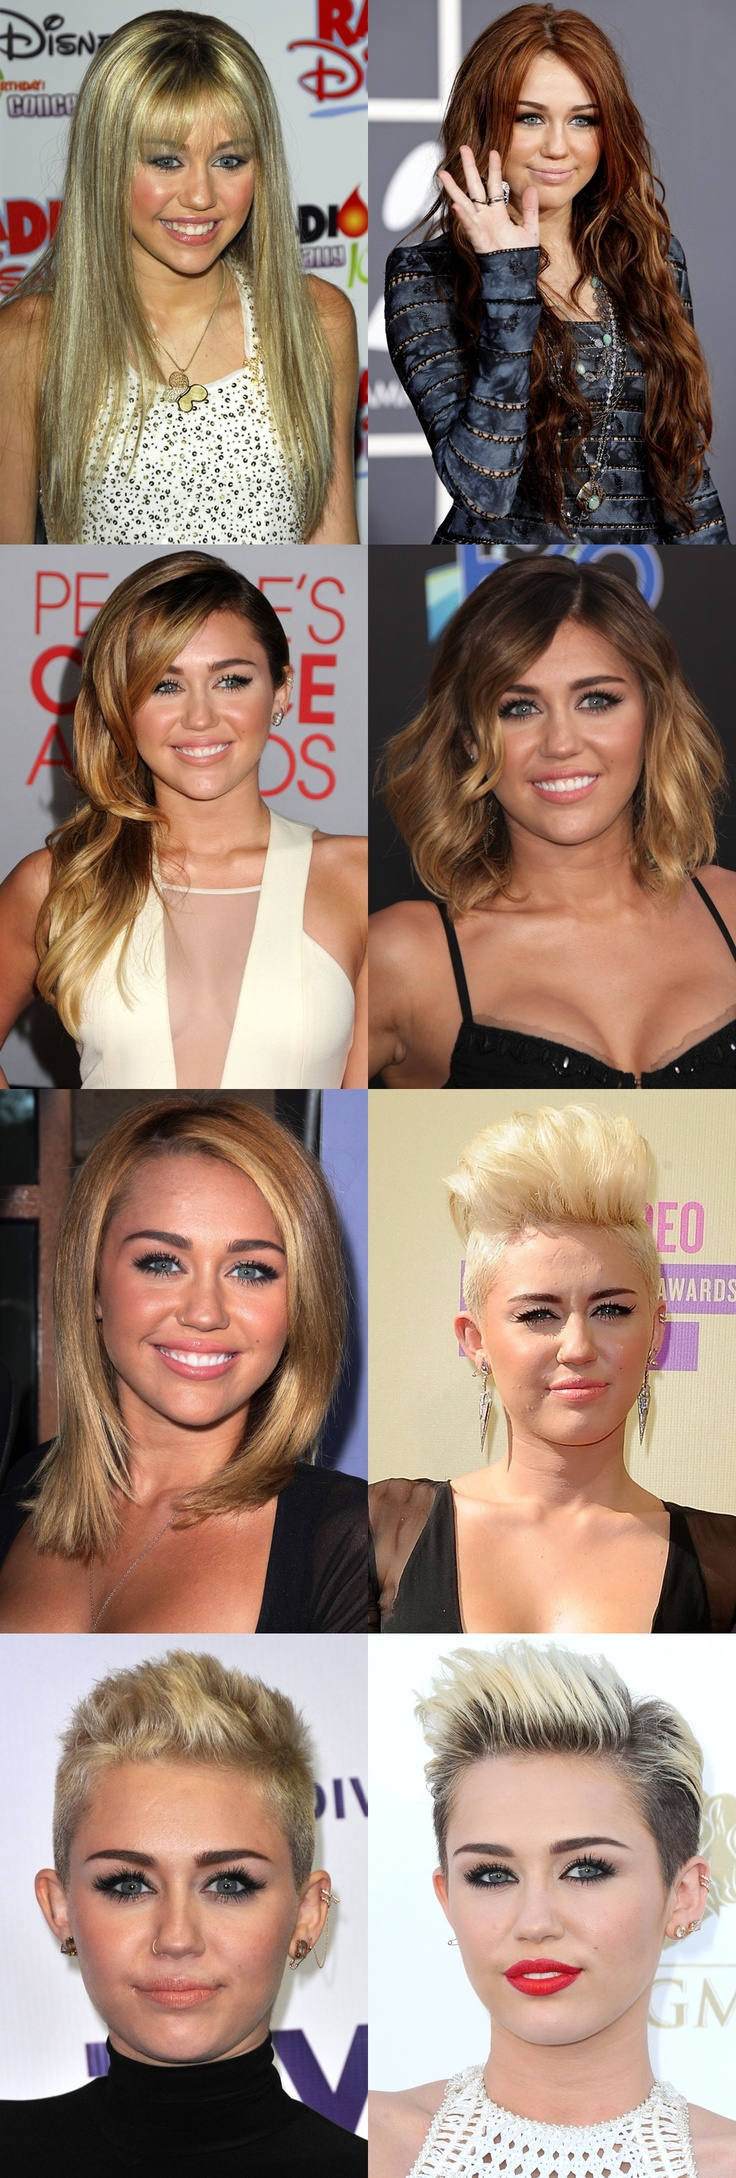 best 25 miley cyrus 2016 ideas on pinterest miley cyrus crazy